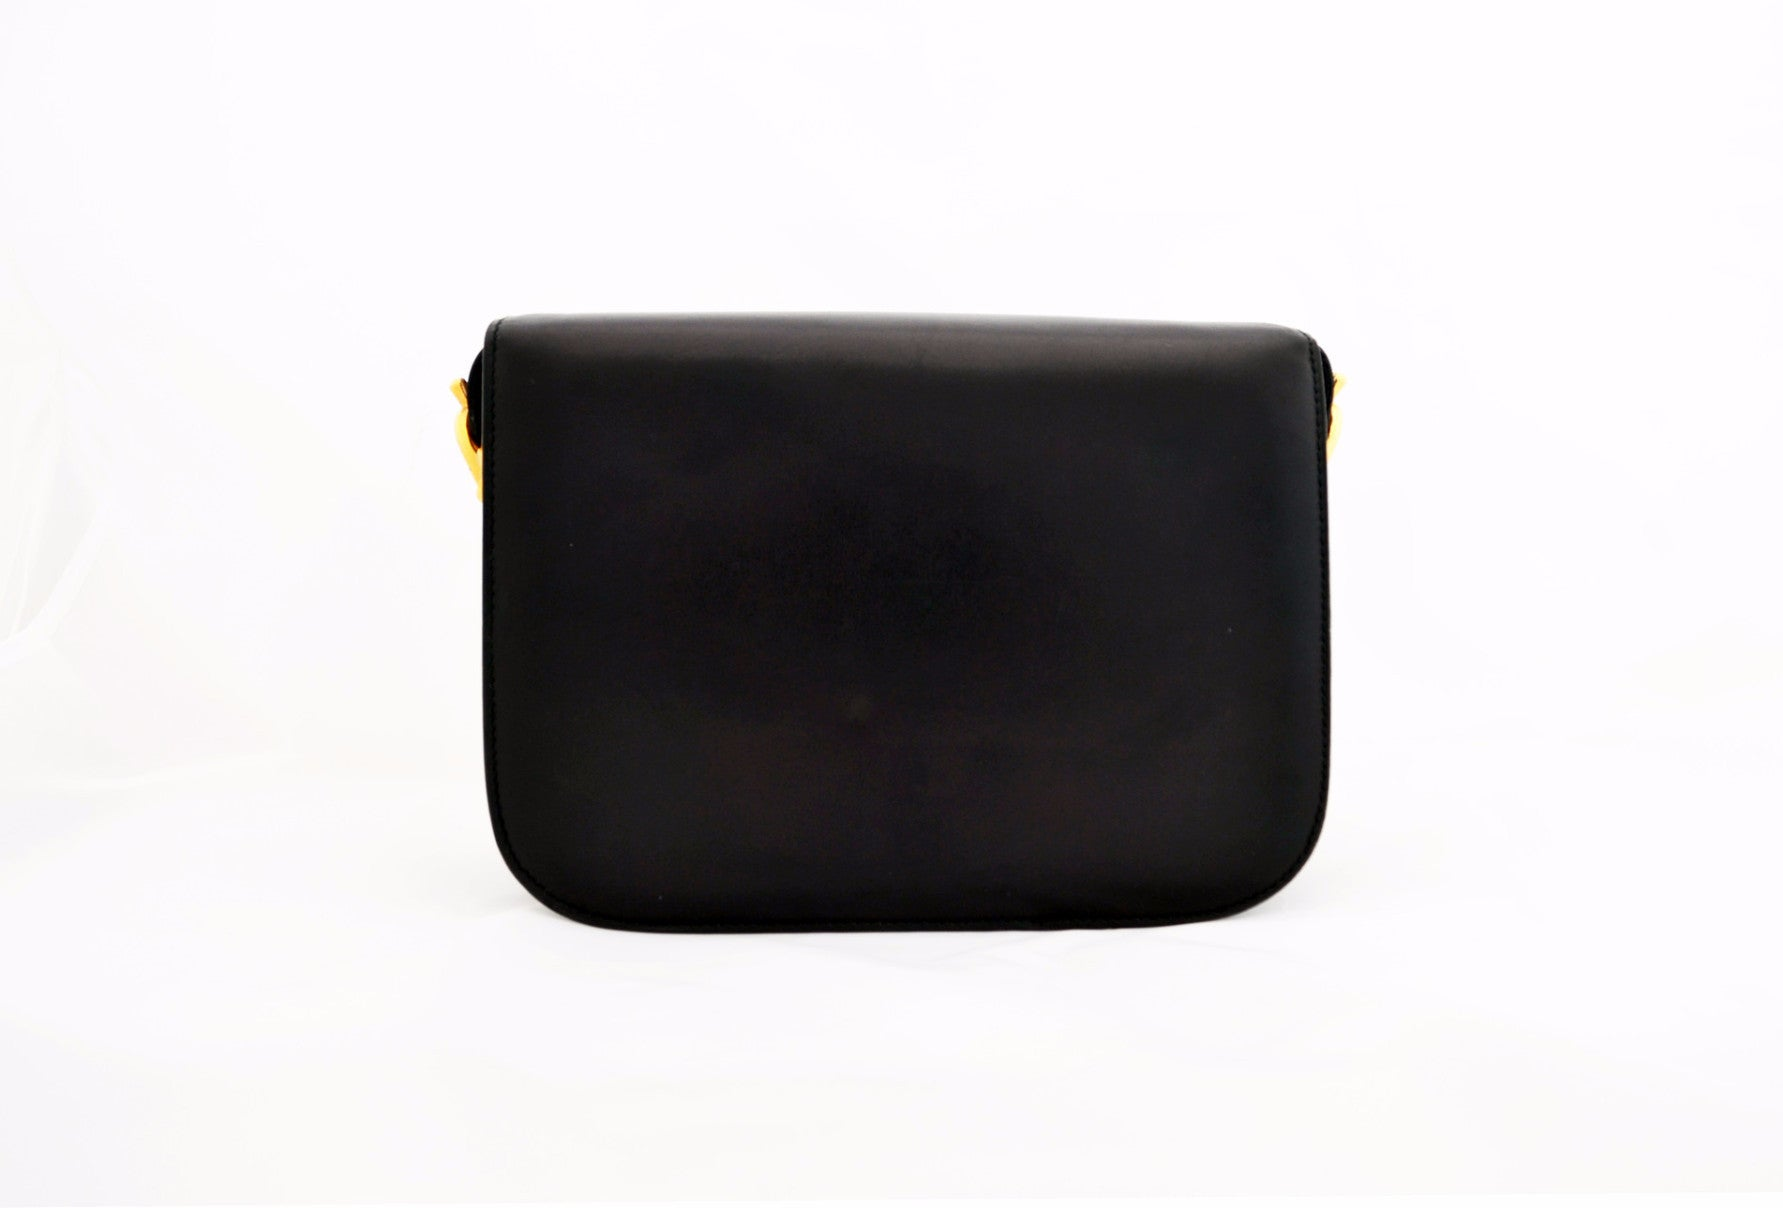 online replica bags - Products - Vintage District